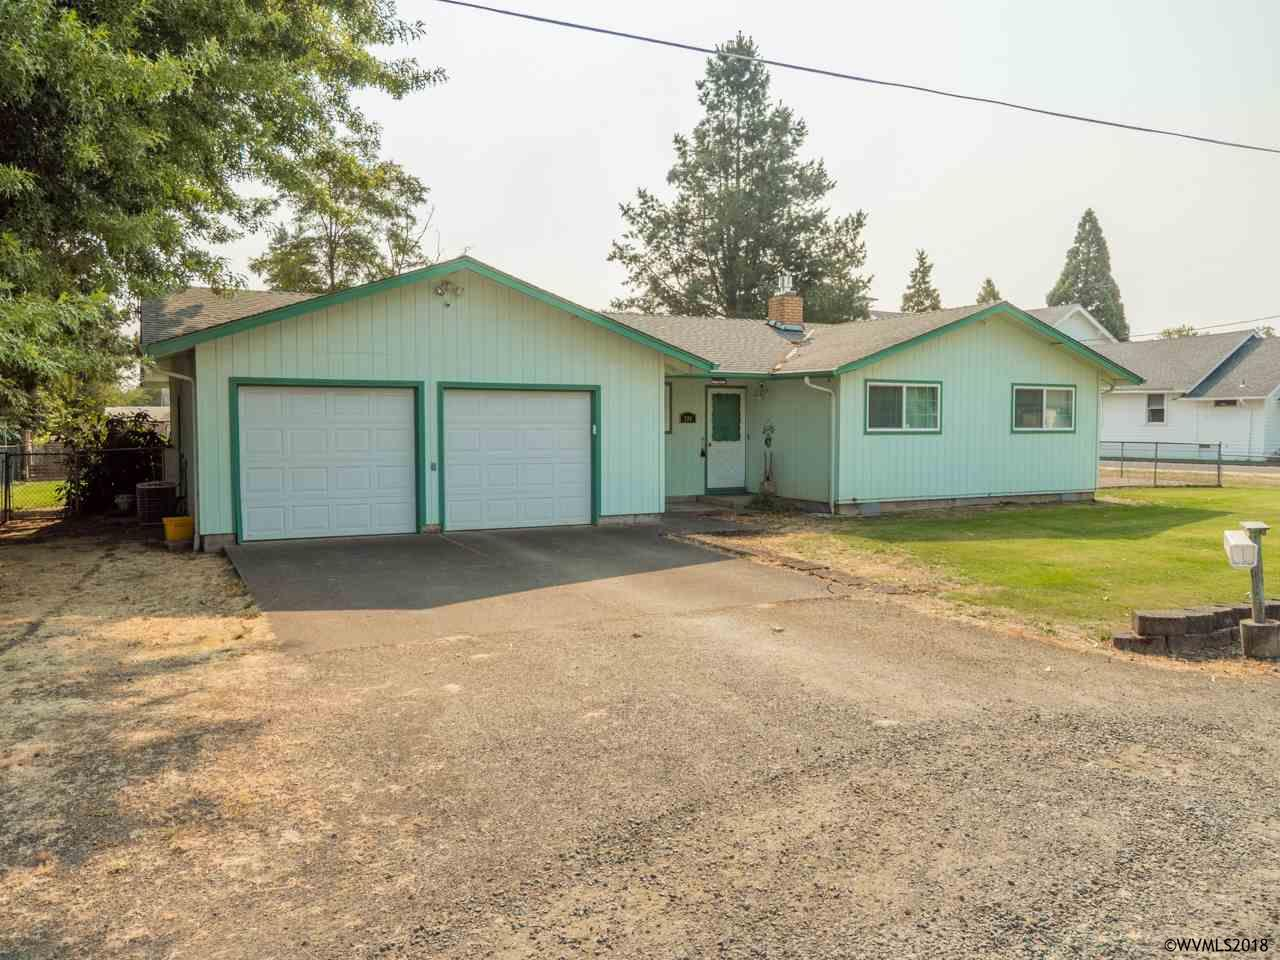 580 W 4th St Halsey, OR 97348